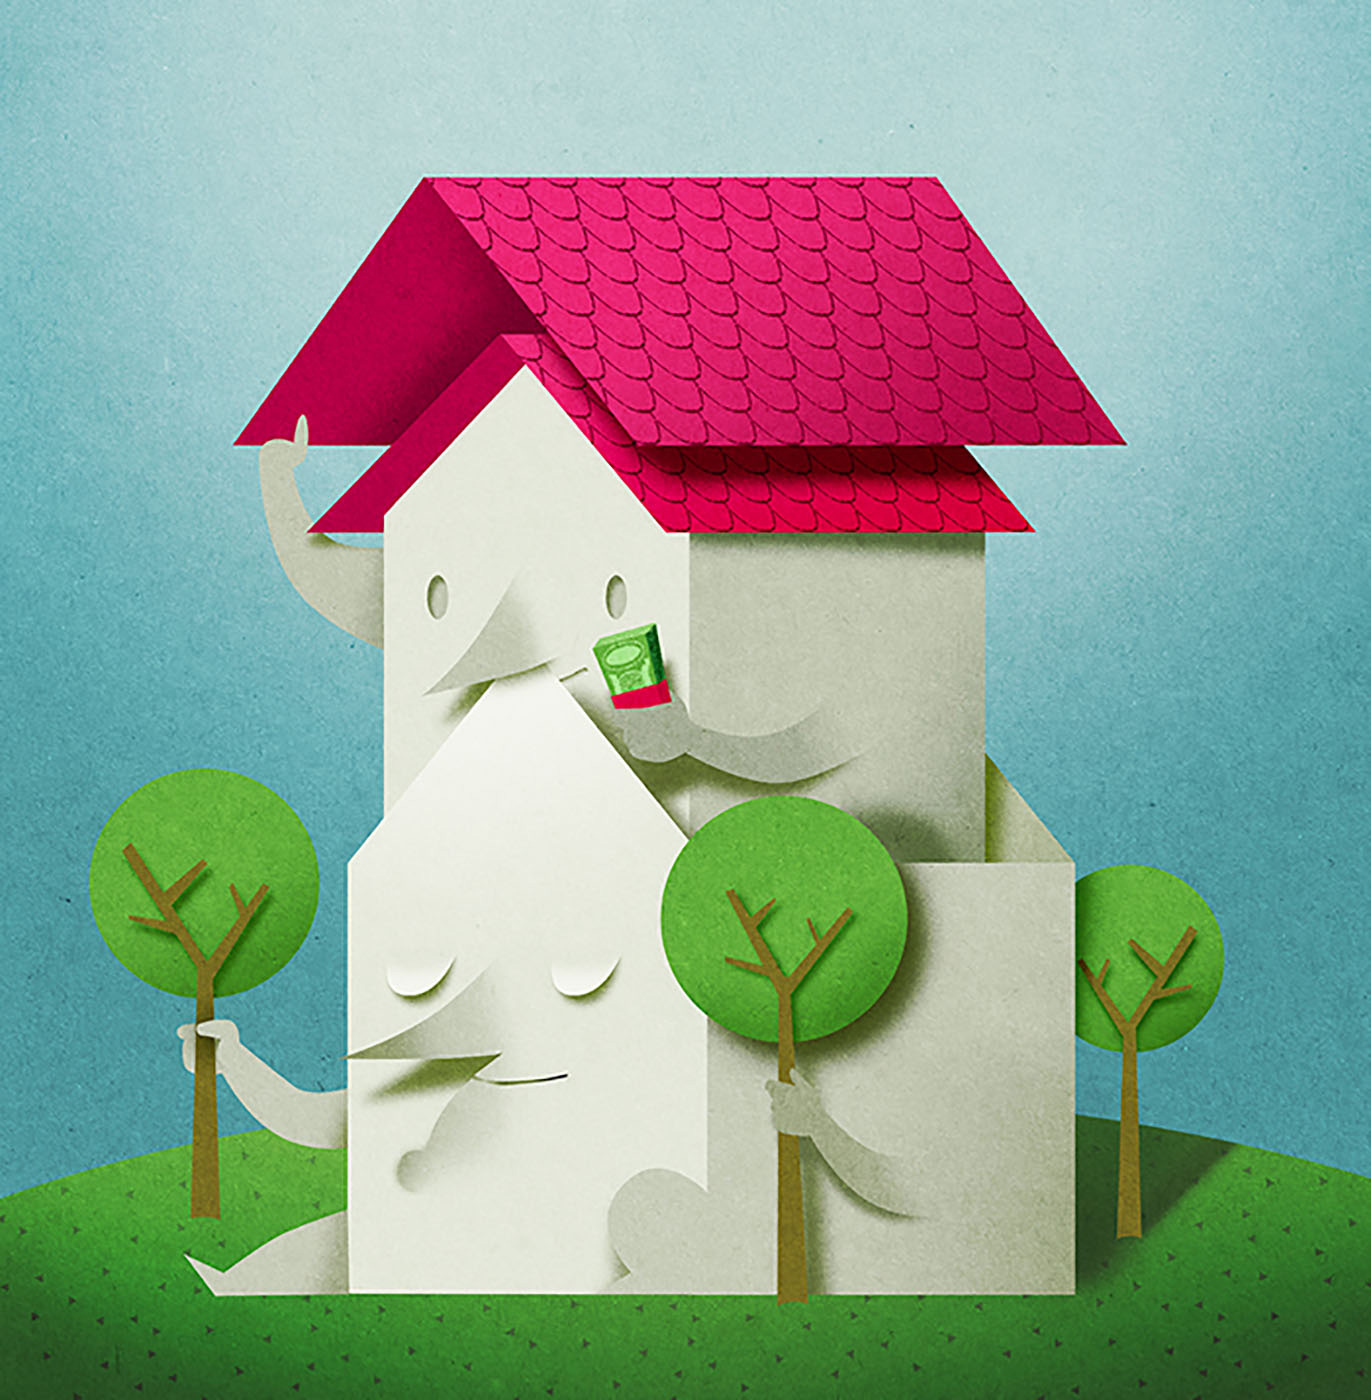 Richard Solomon - 2